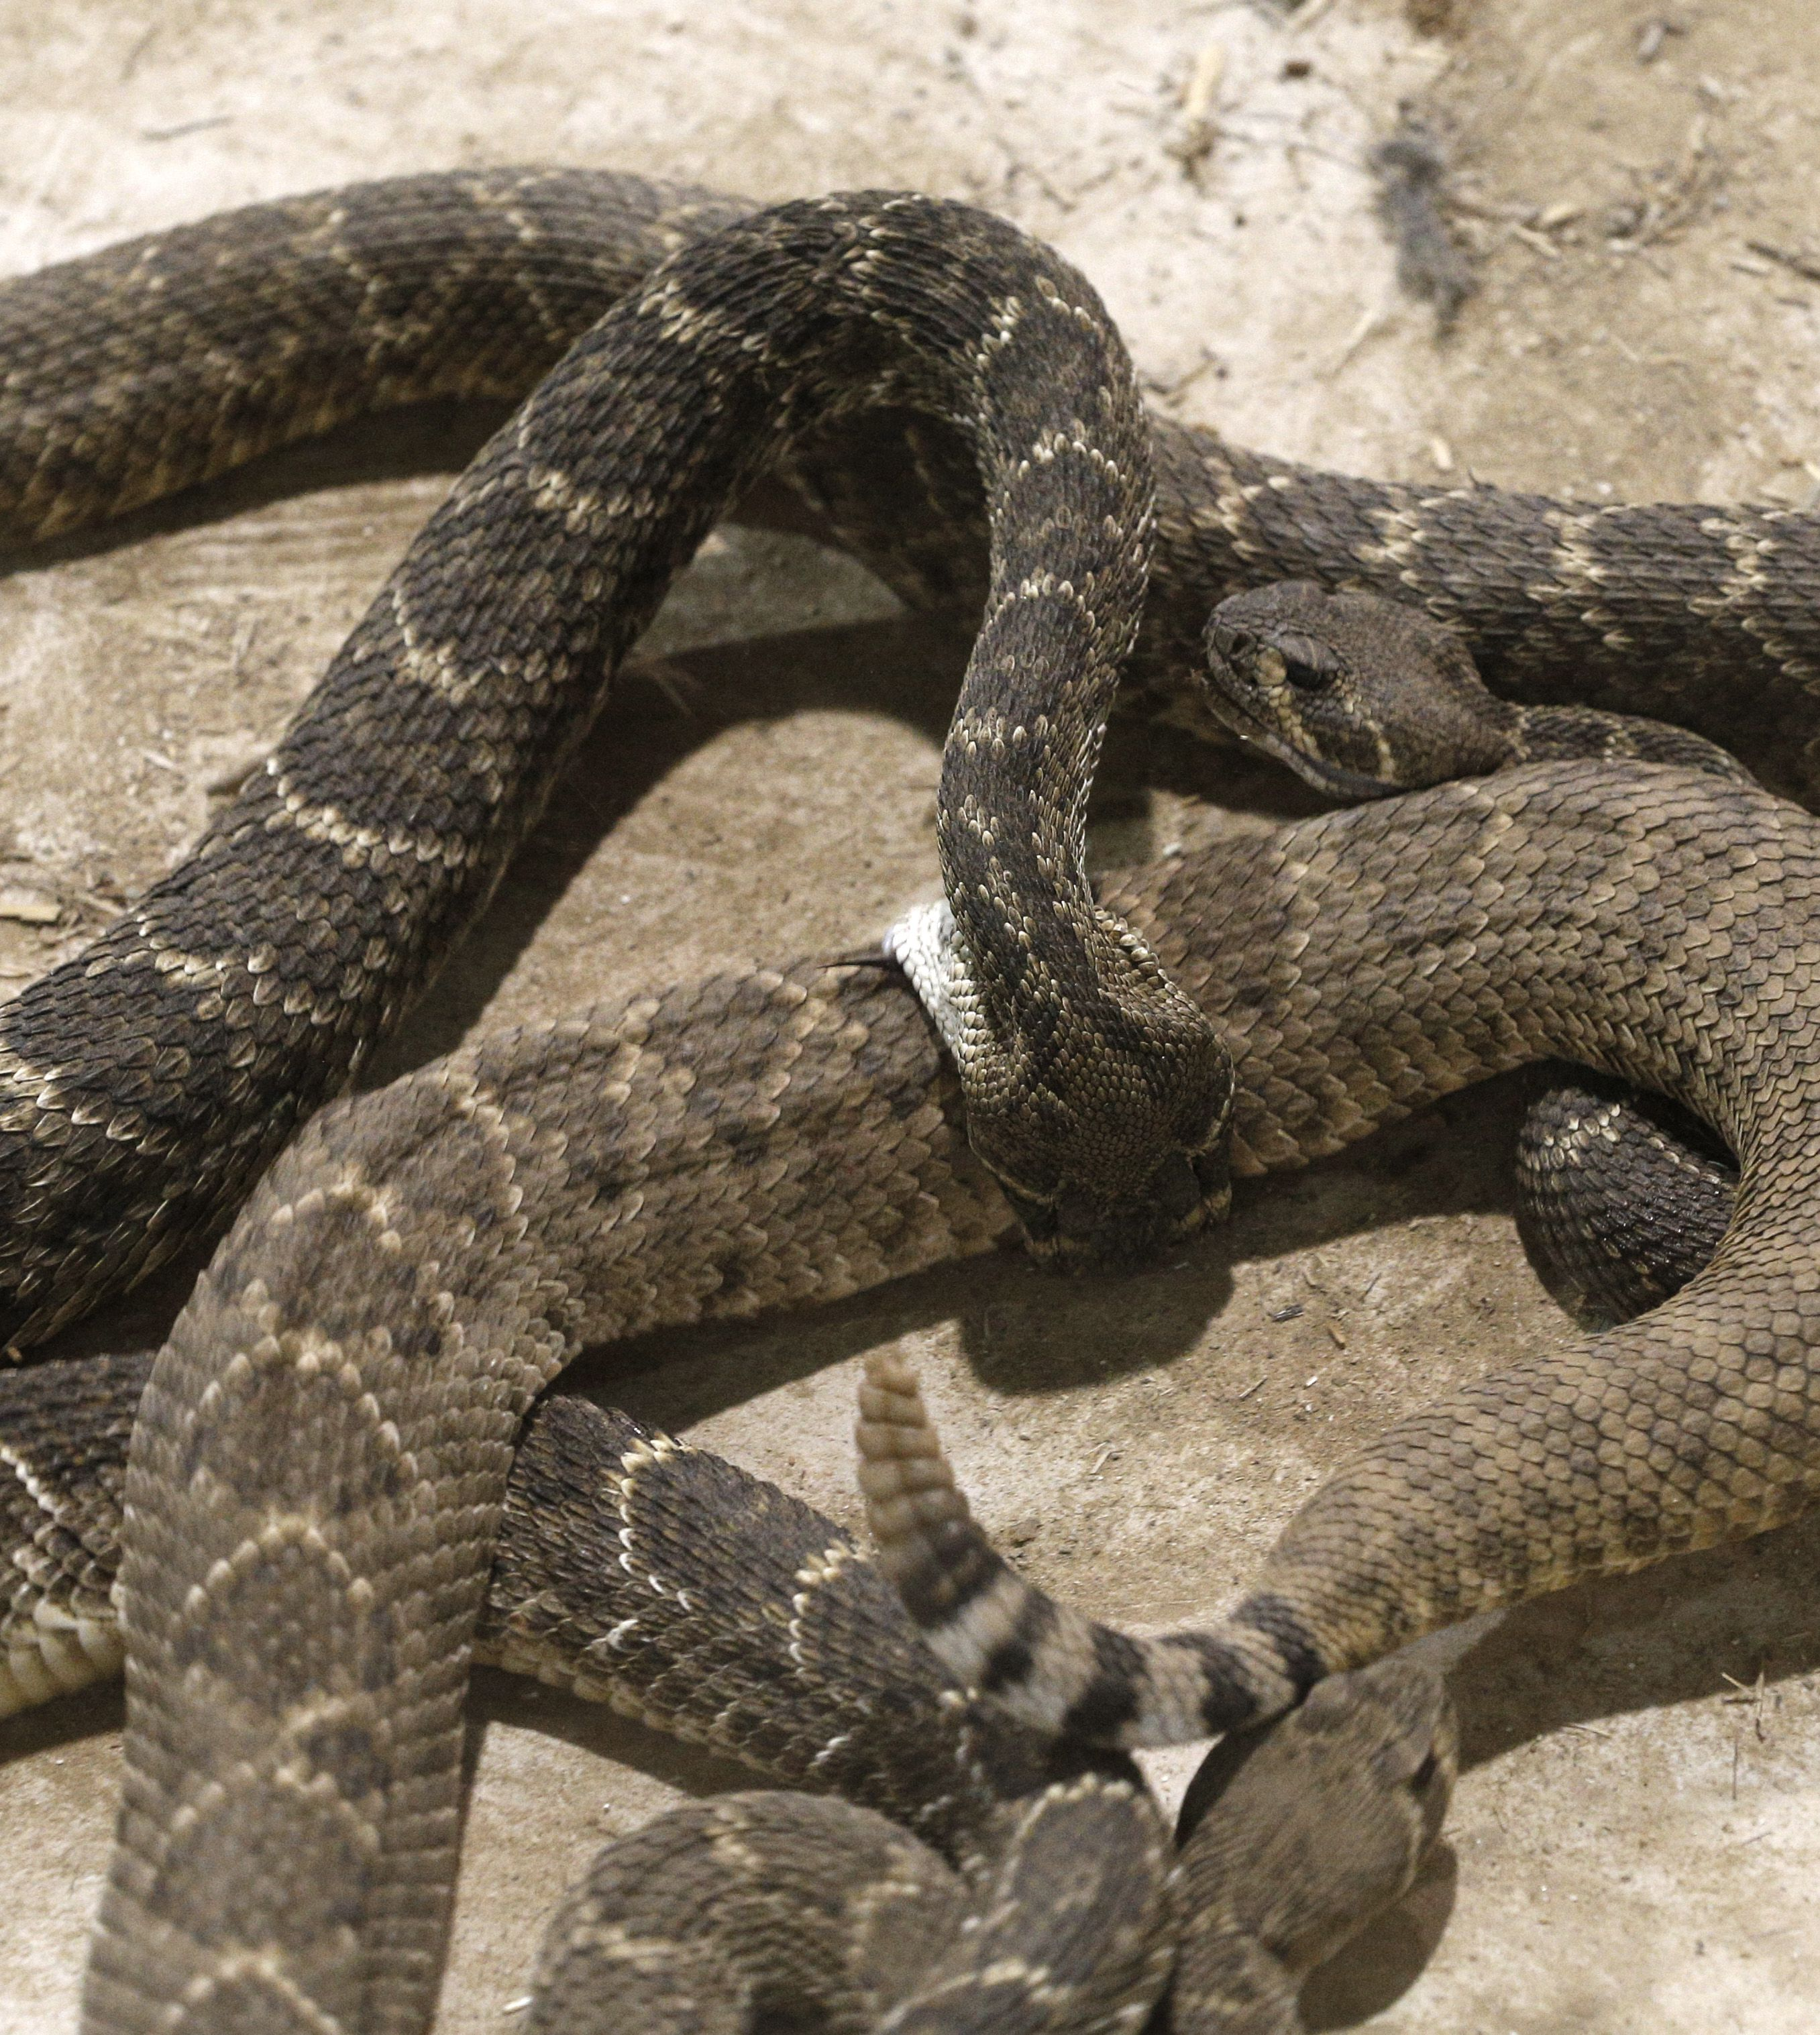 Texas rattlesnake battle pits small-town economics against